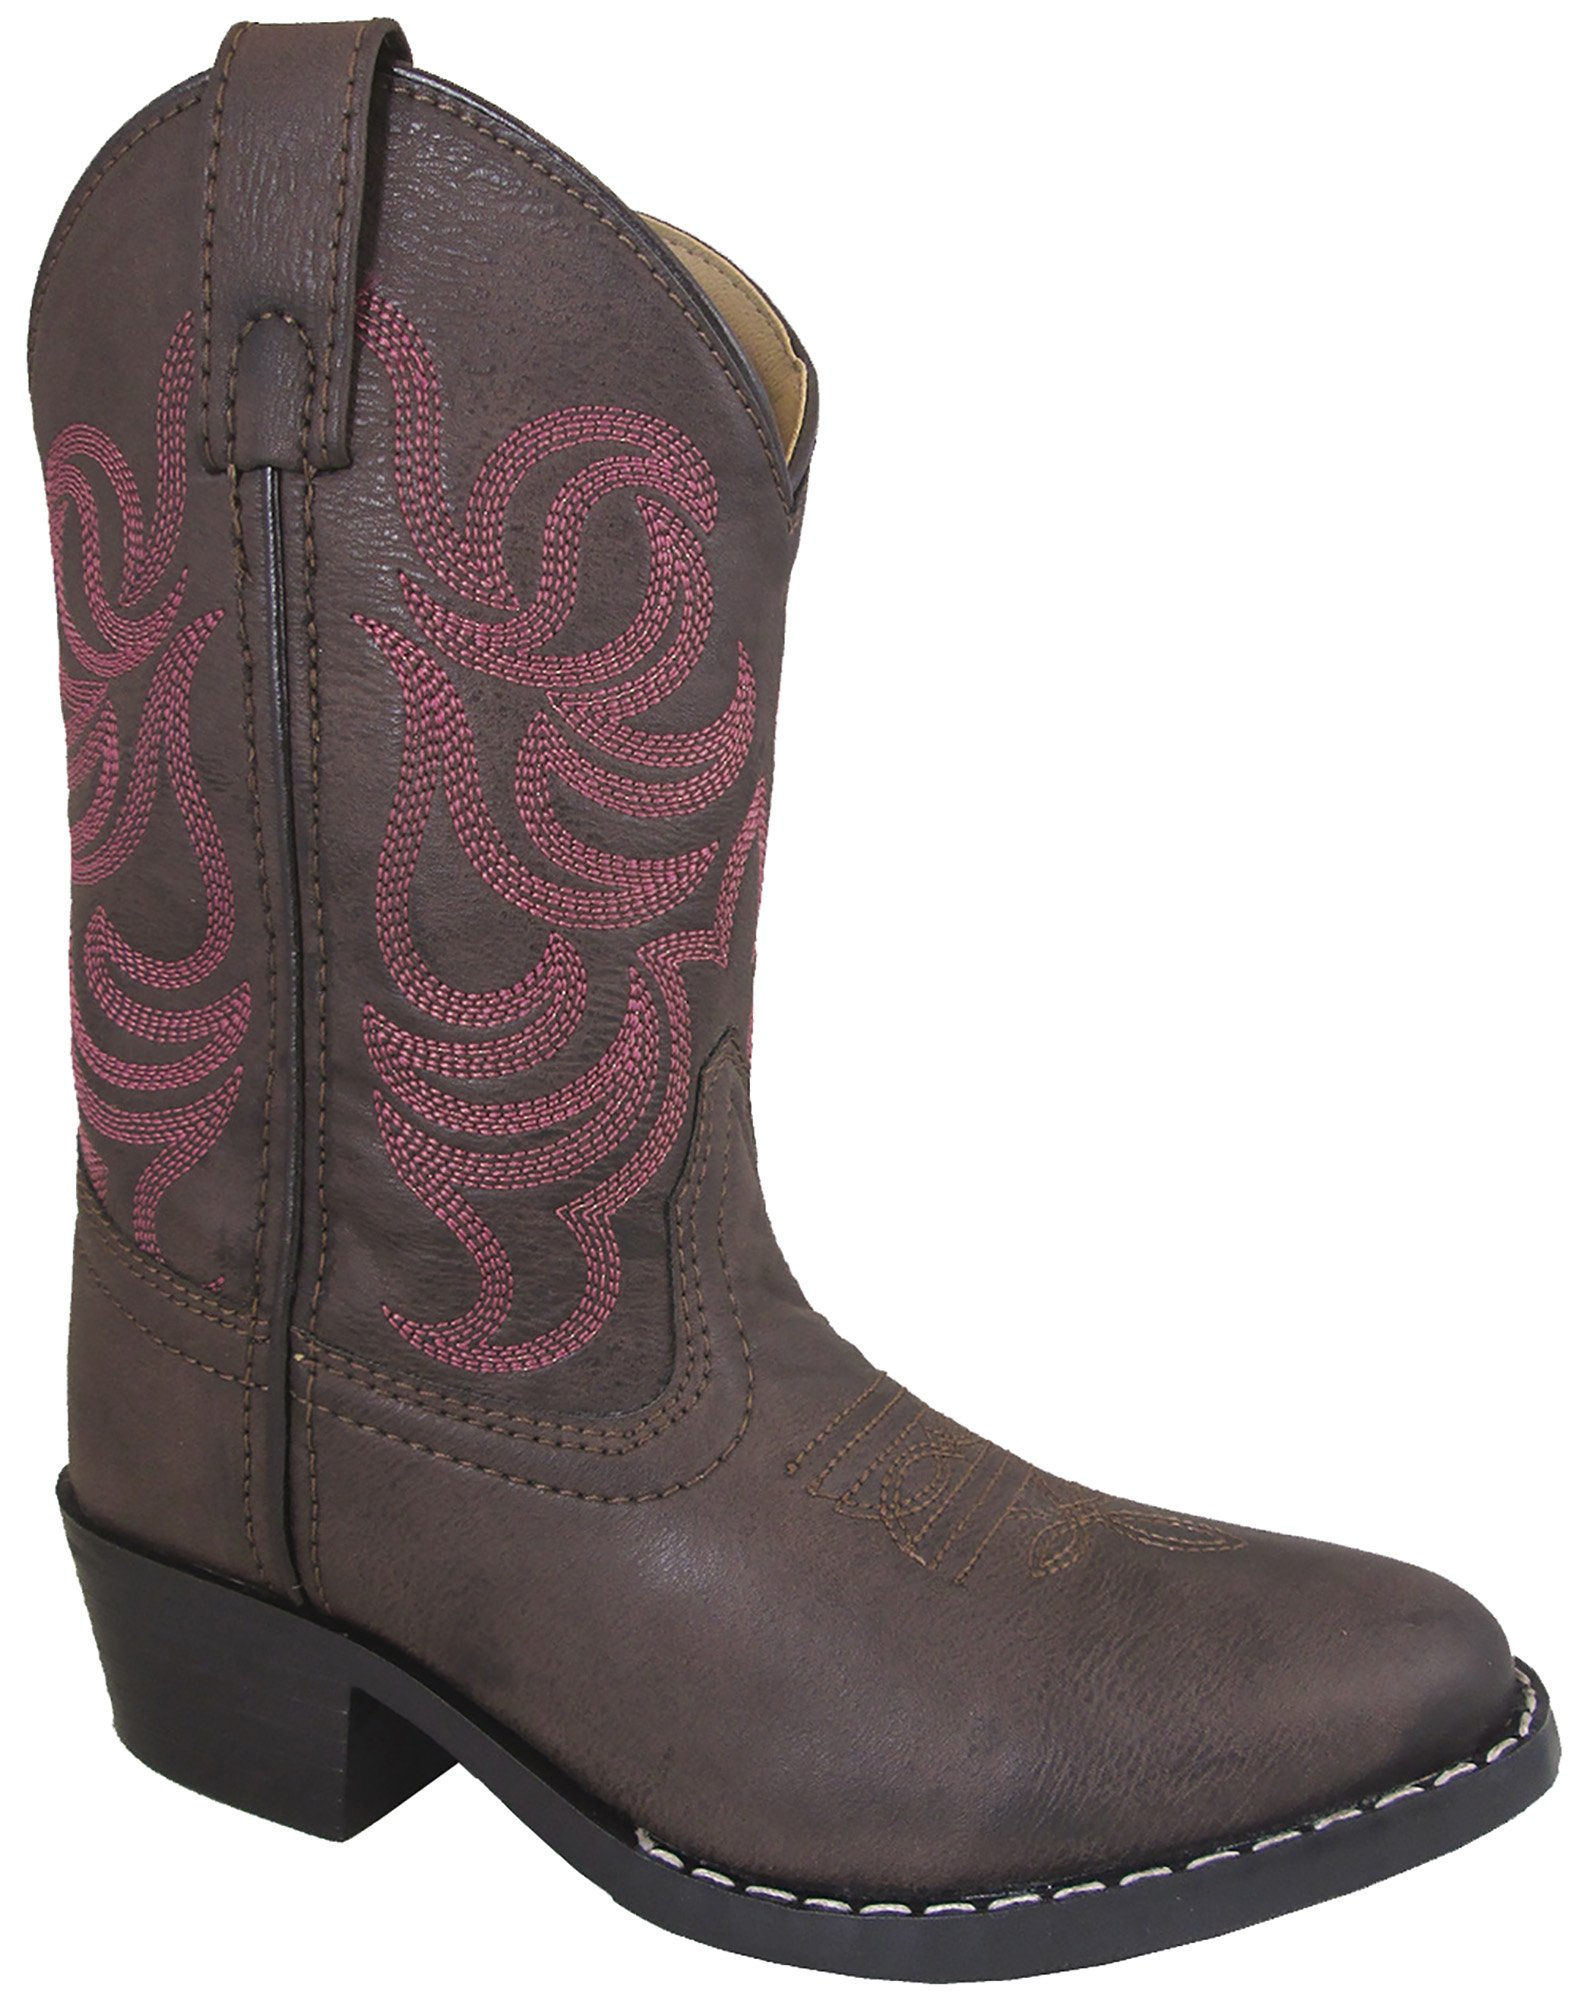 Smoky Mountain Girls Brown with Pink Stitch Monterey Western Cowboy Boots Brown 6.5